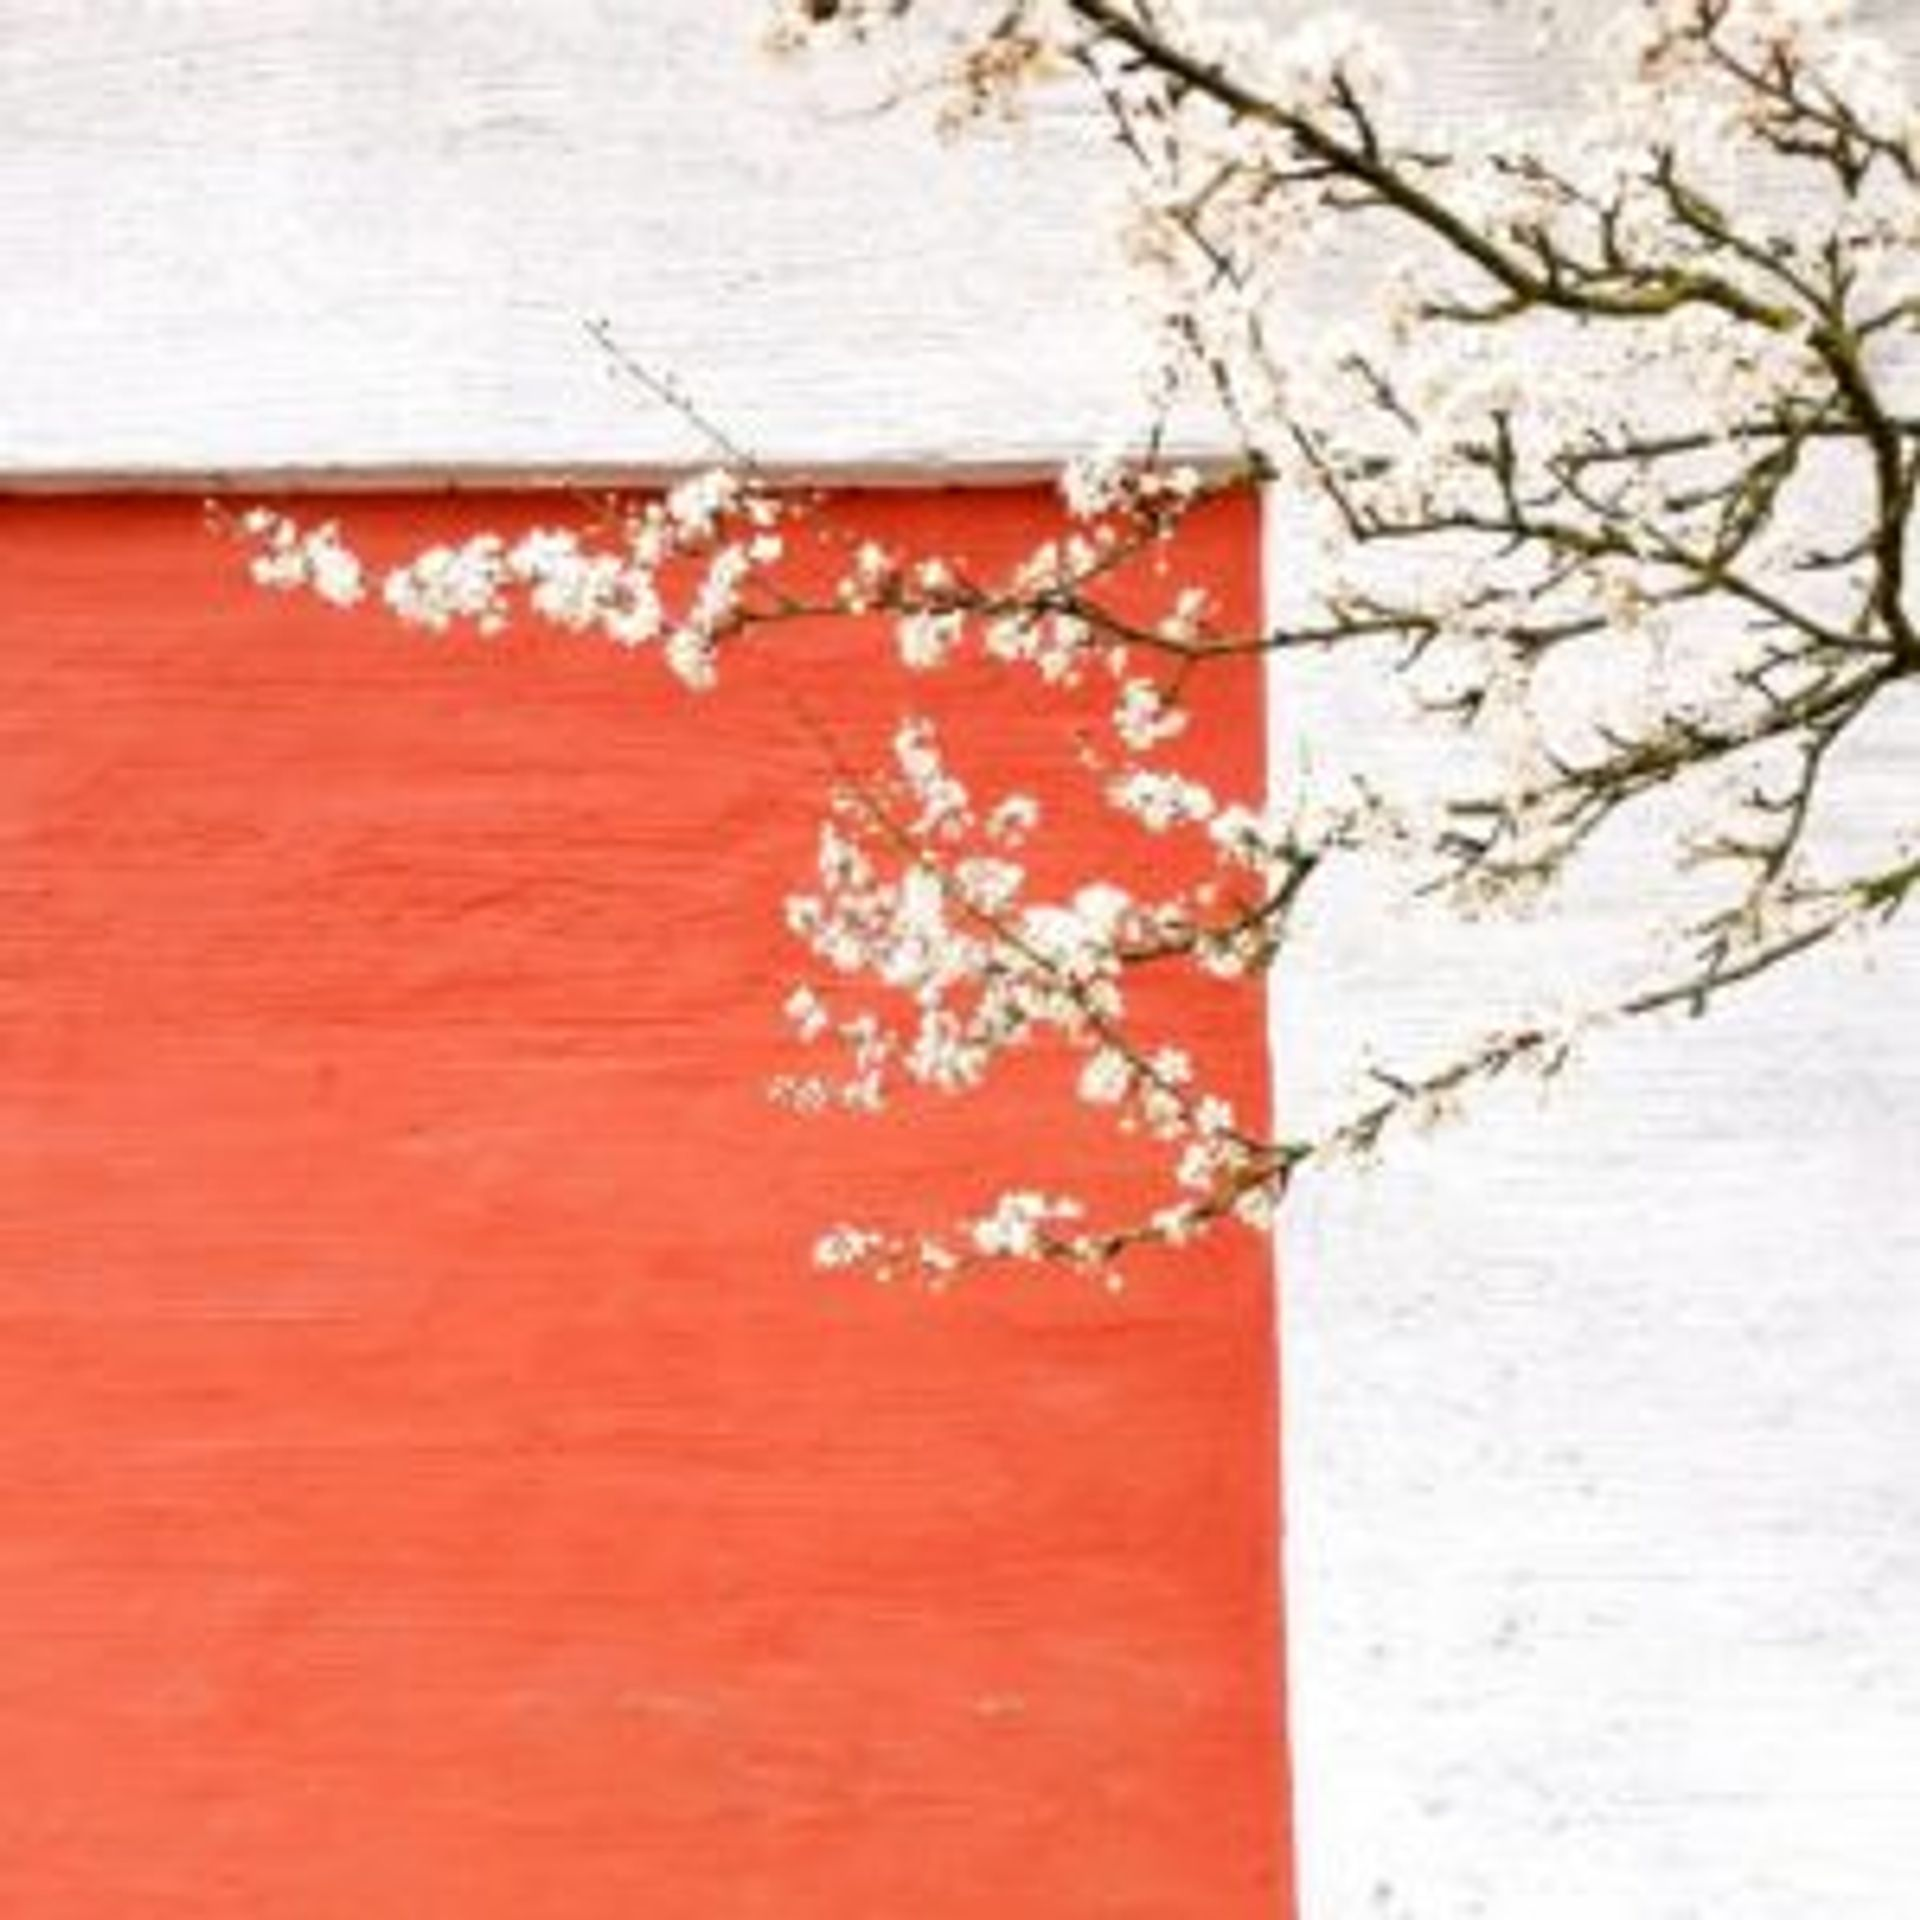 A white plum flower tree in front of a red and white building.